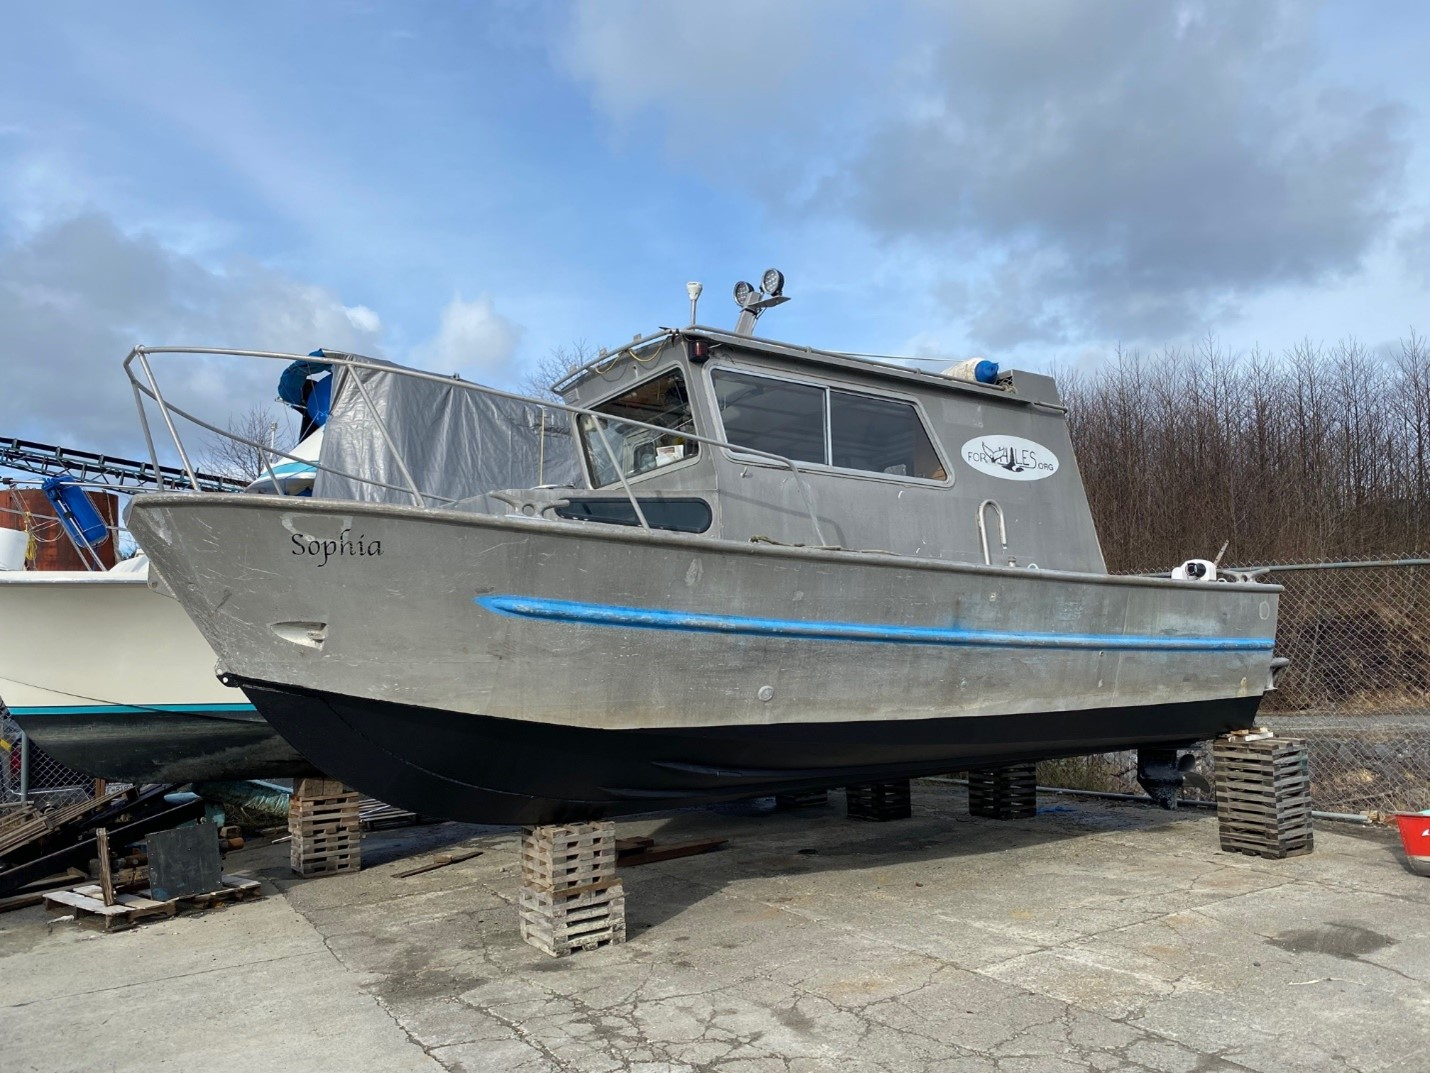 How to Find a Good Company in Campbell River that Leases High-Quality Aluminum Boats